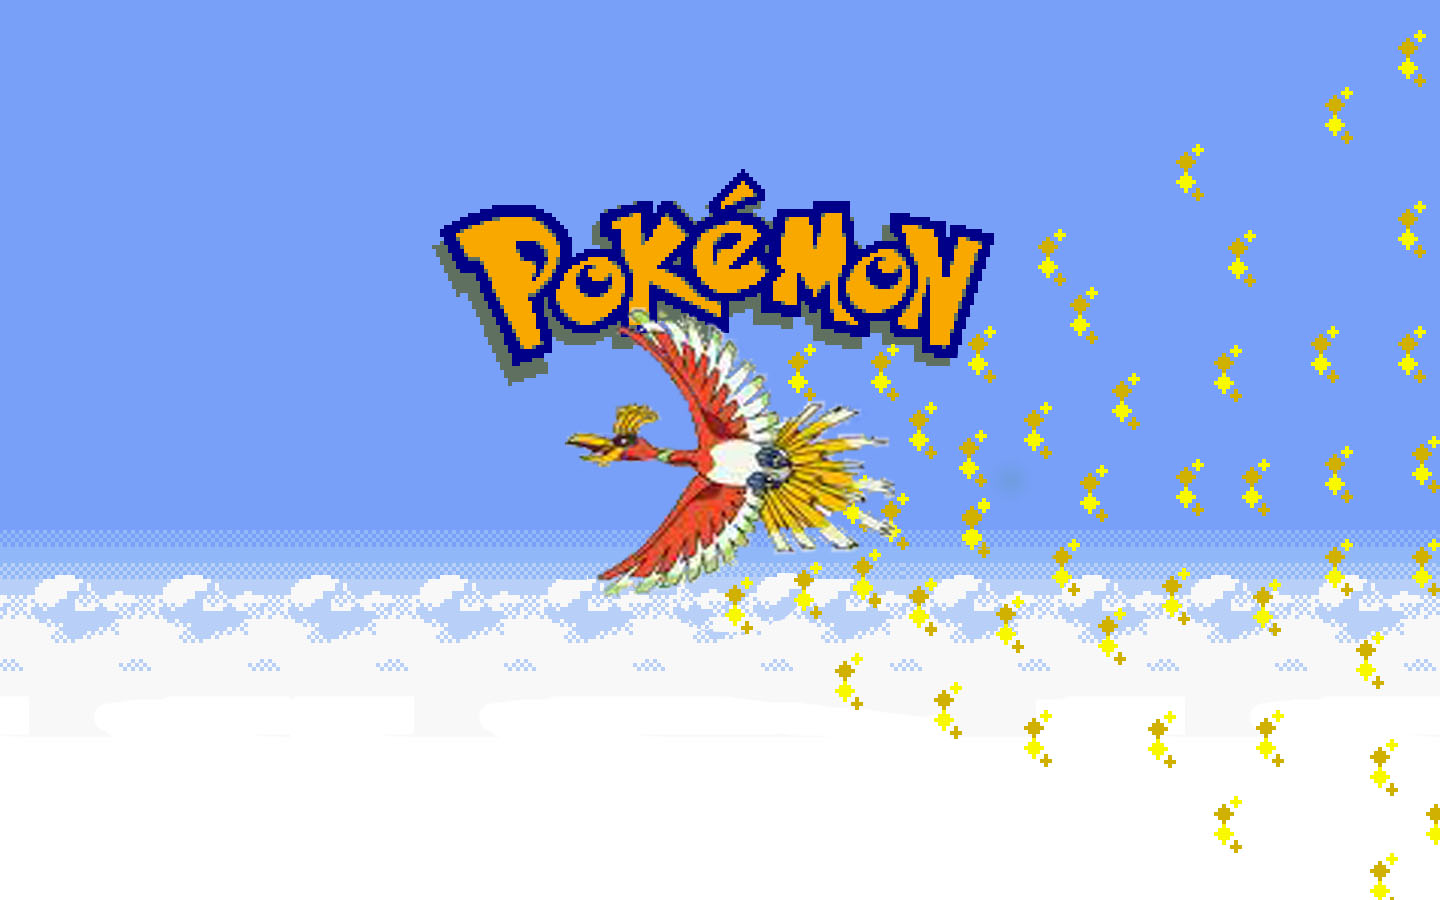 Free Download Pokemon Gold Wallpaper 1440x900 For Your Desktop